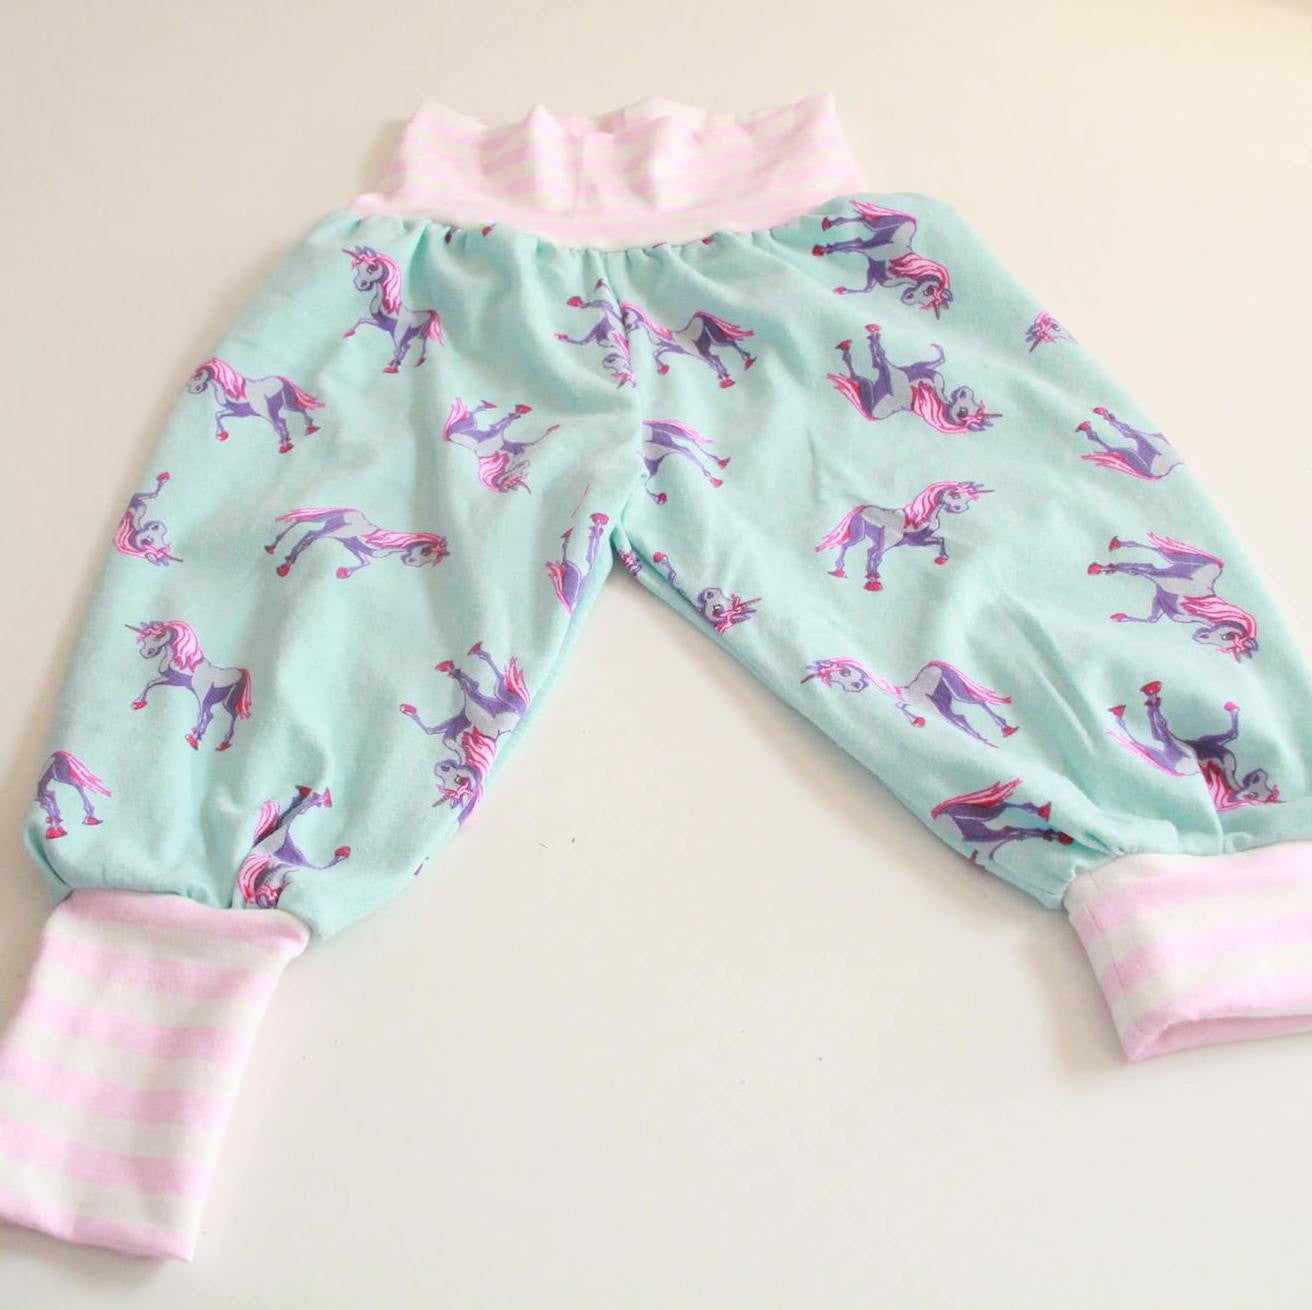 Lounge pants - Unicorn print